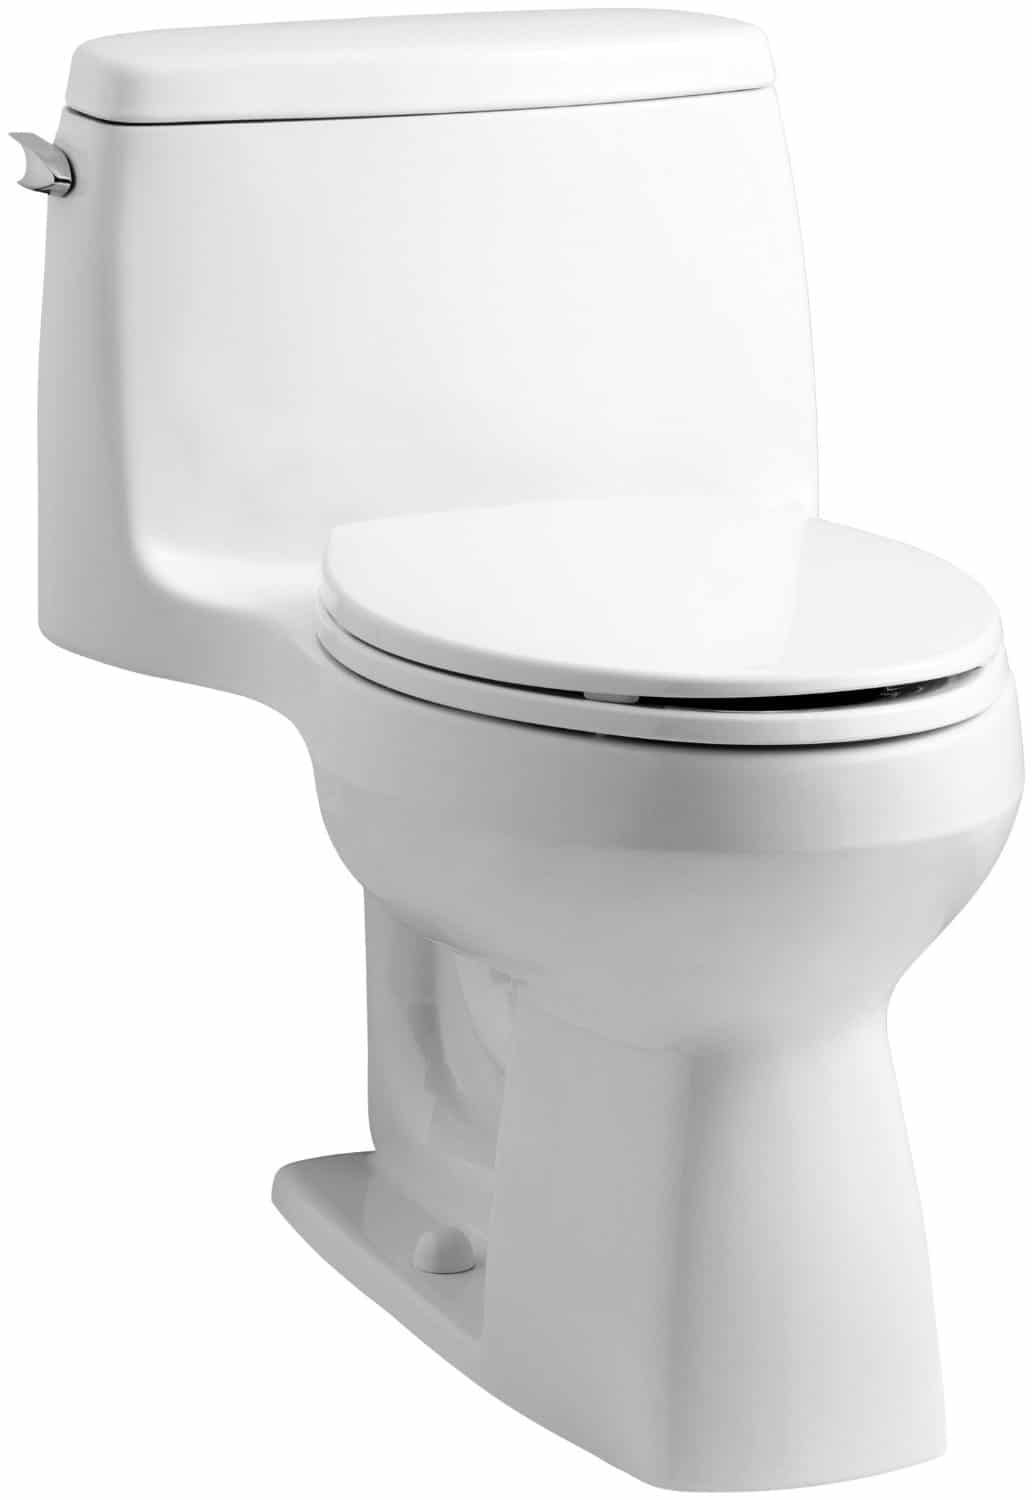 Kohler Santa Rosa Toilet Review